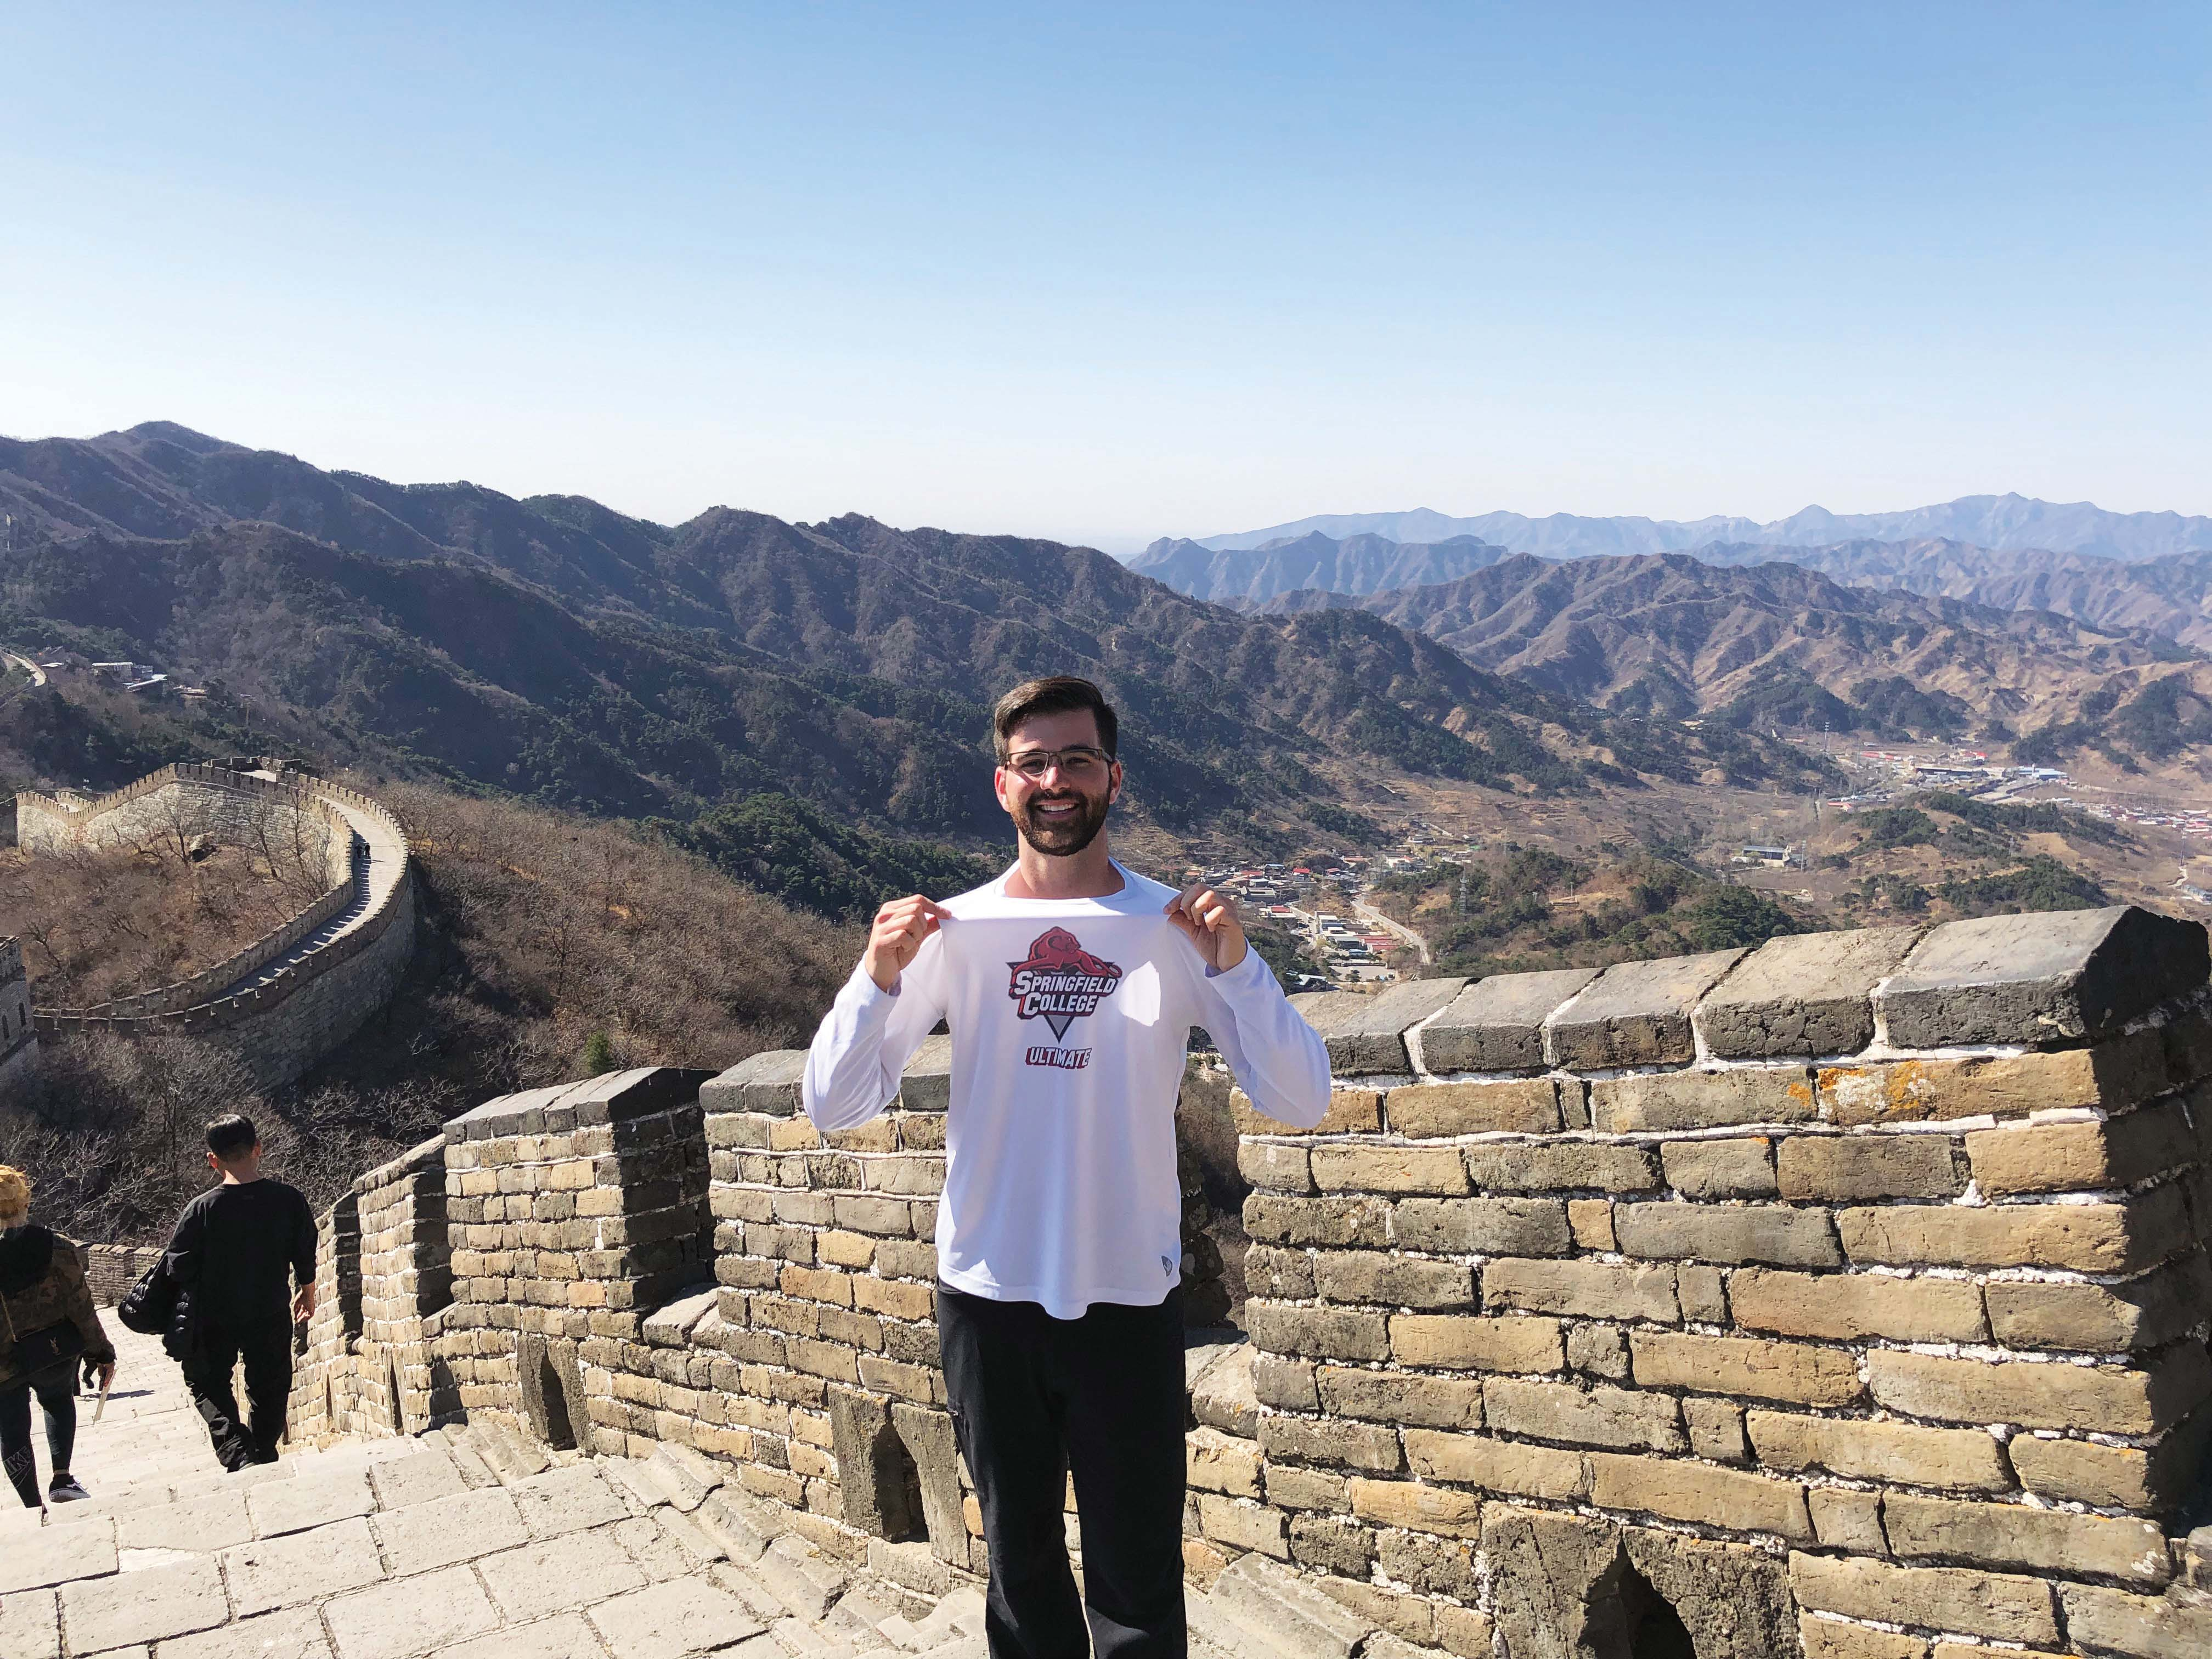 Stu Sokoloff on the Great Wall of China